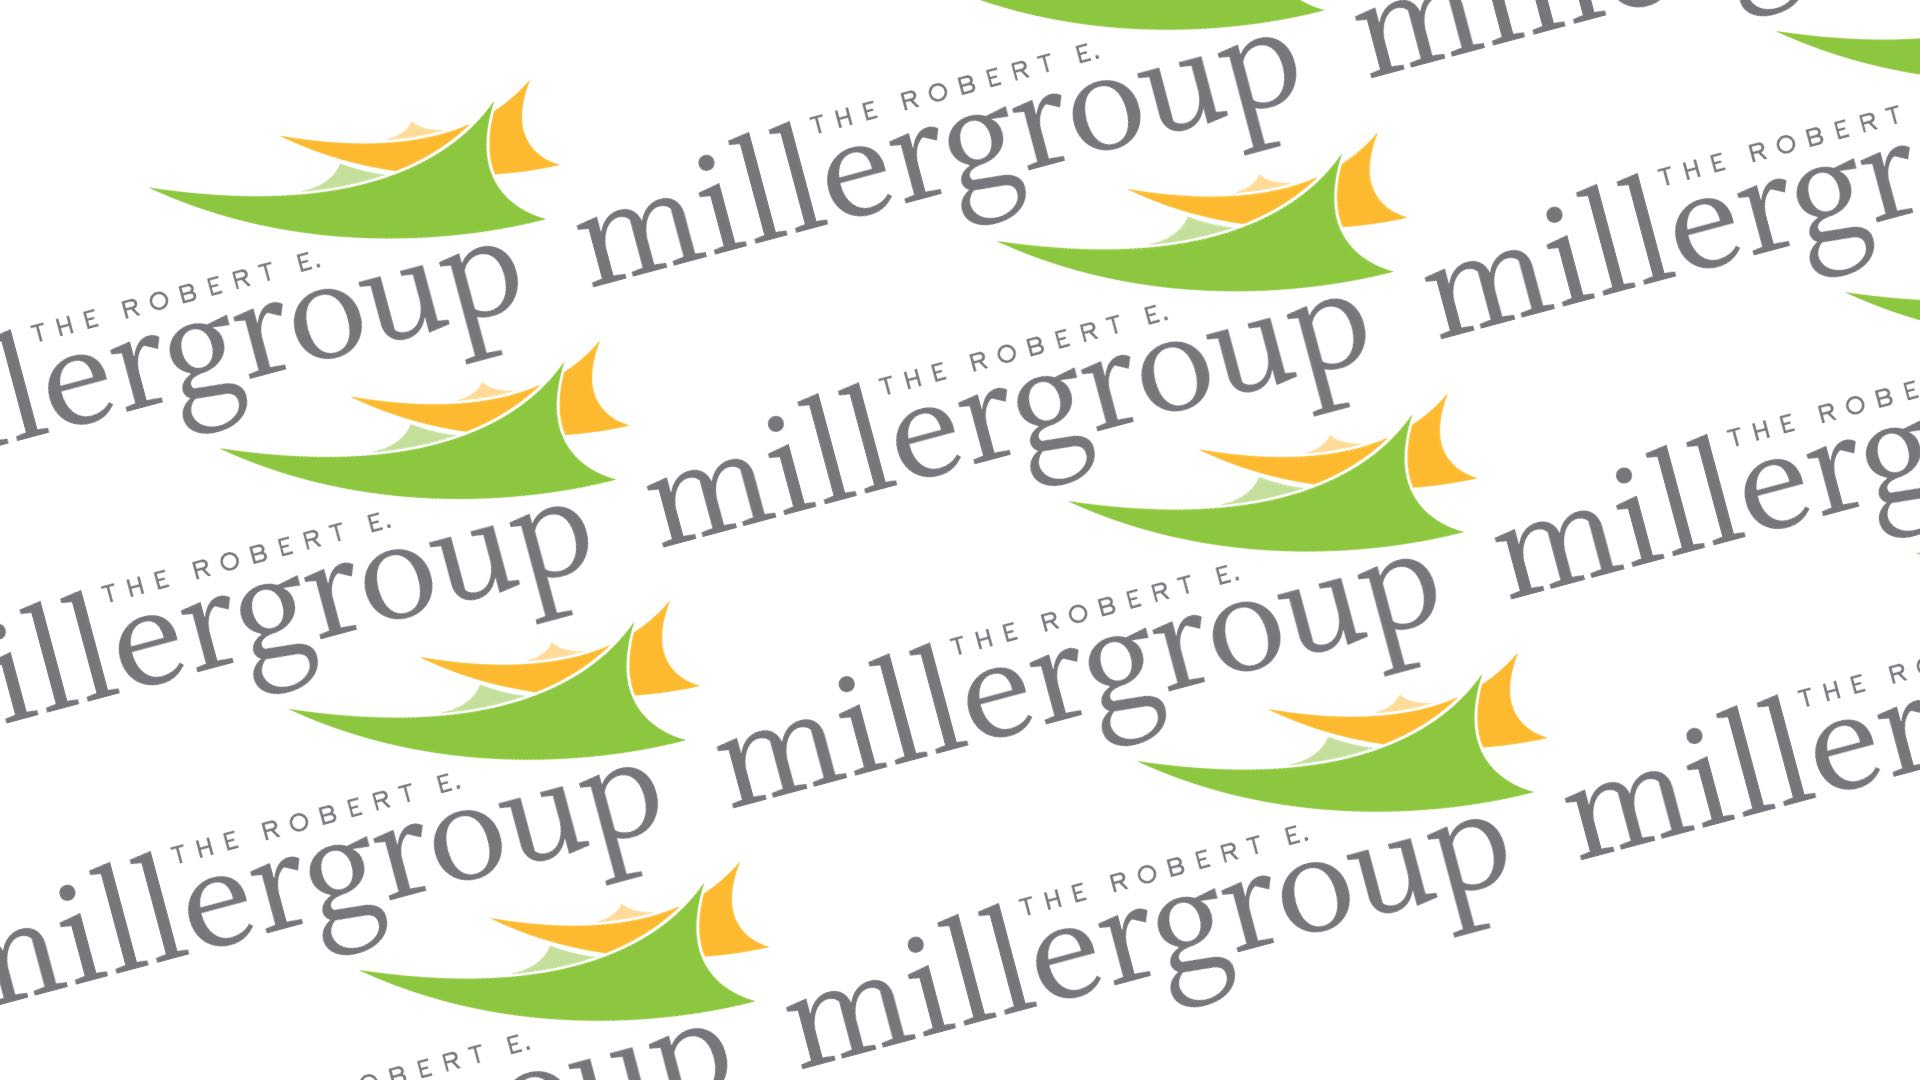 The Miller Group Partnership